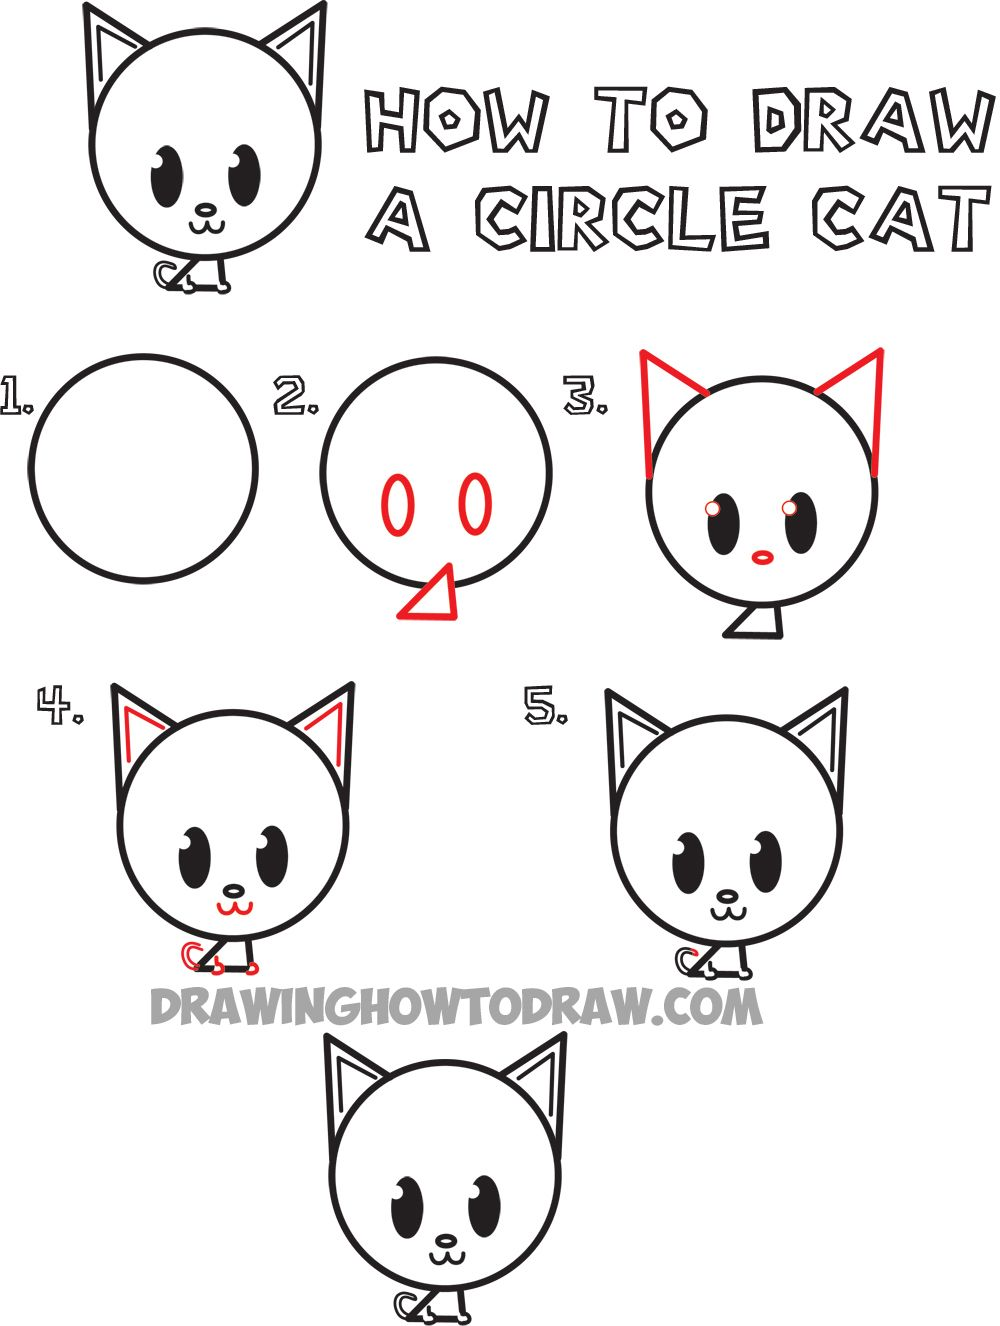 Uncategorized How To Draw Step By Step For Kids Animals how to draw circle cats easy for kids 1 jpg rajzok kids